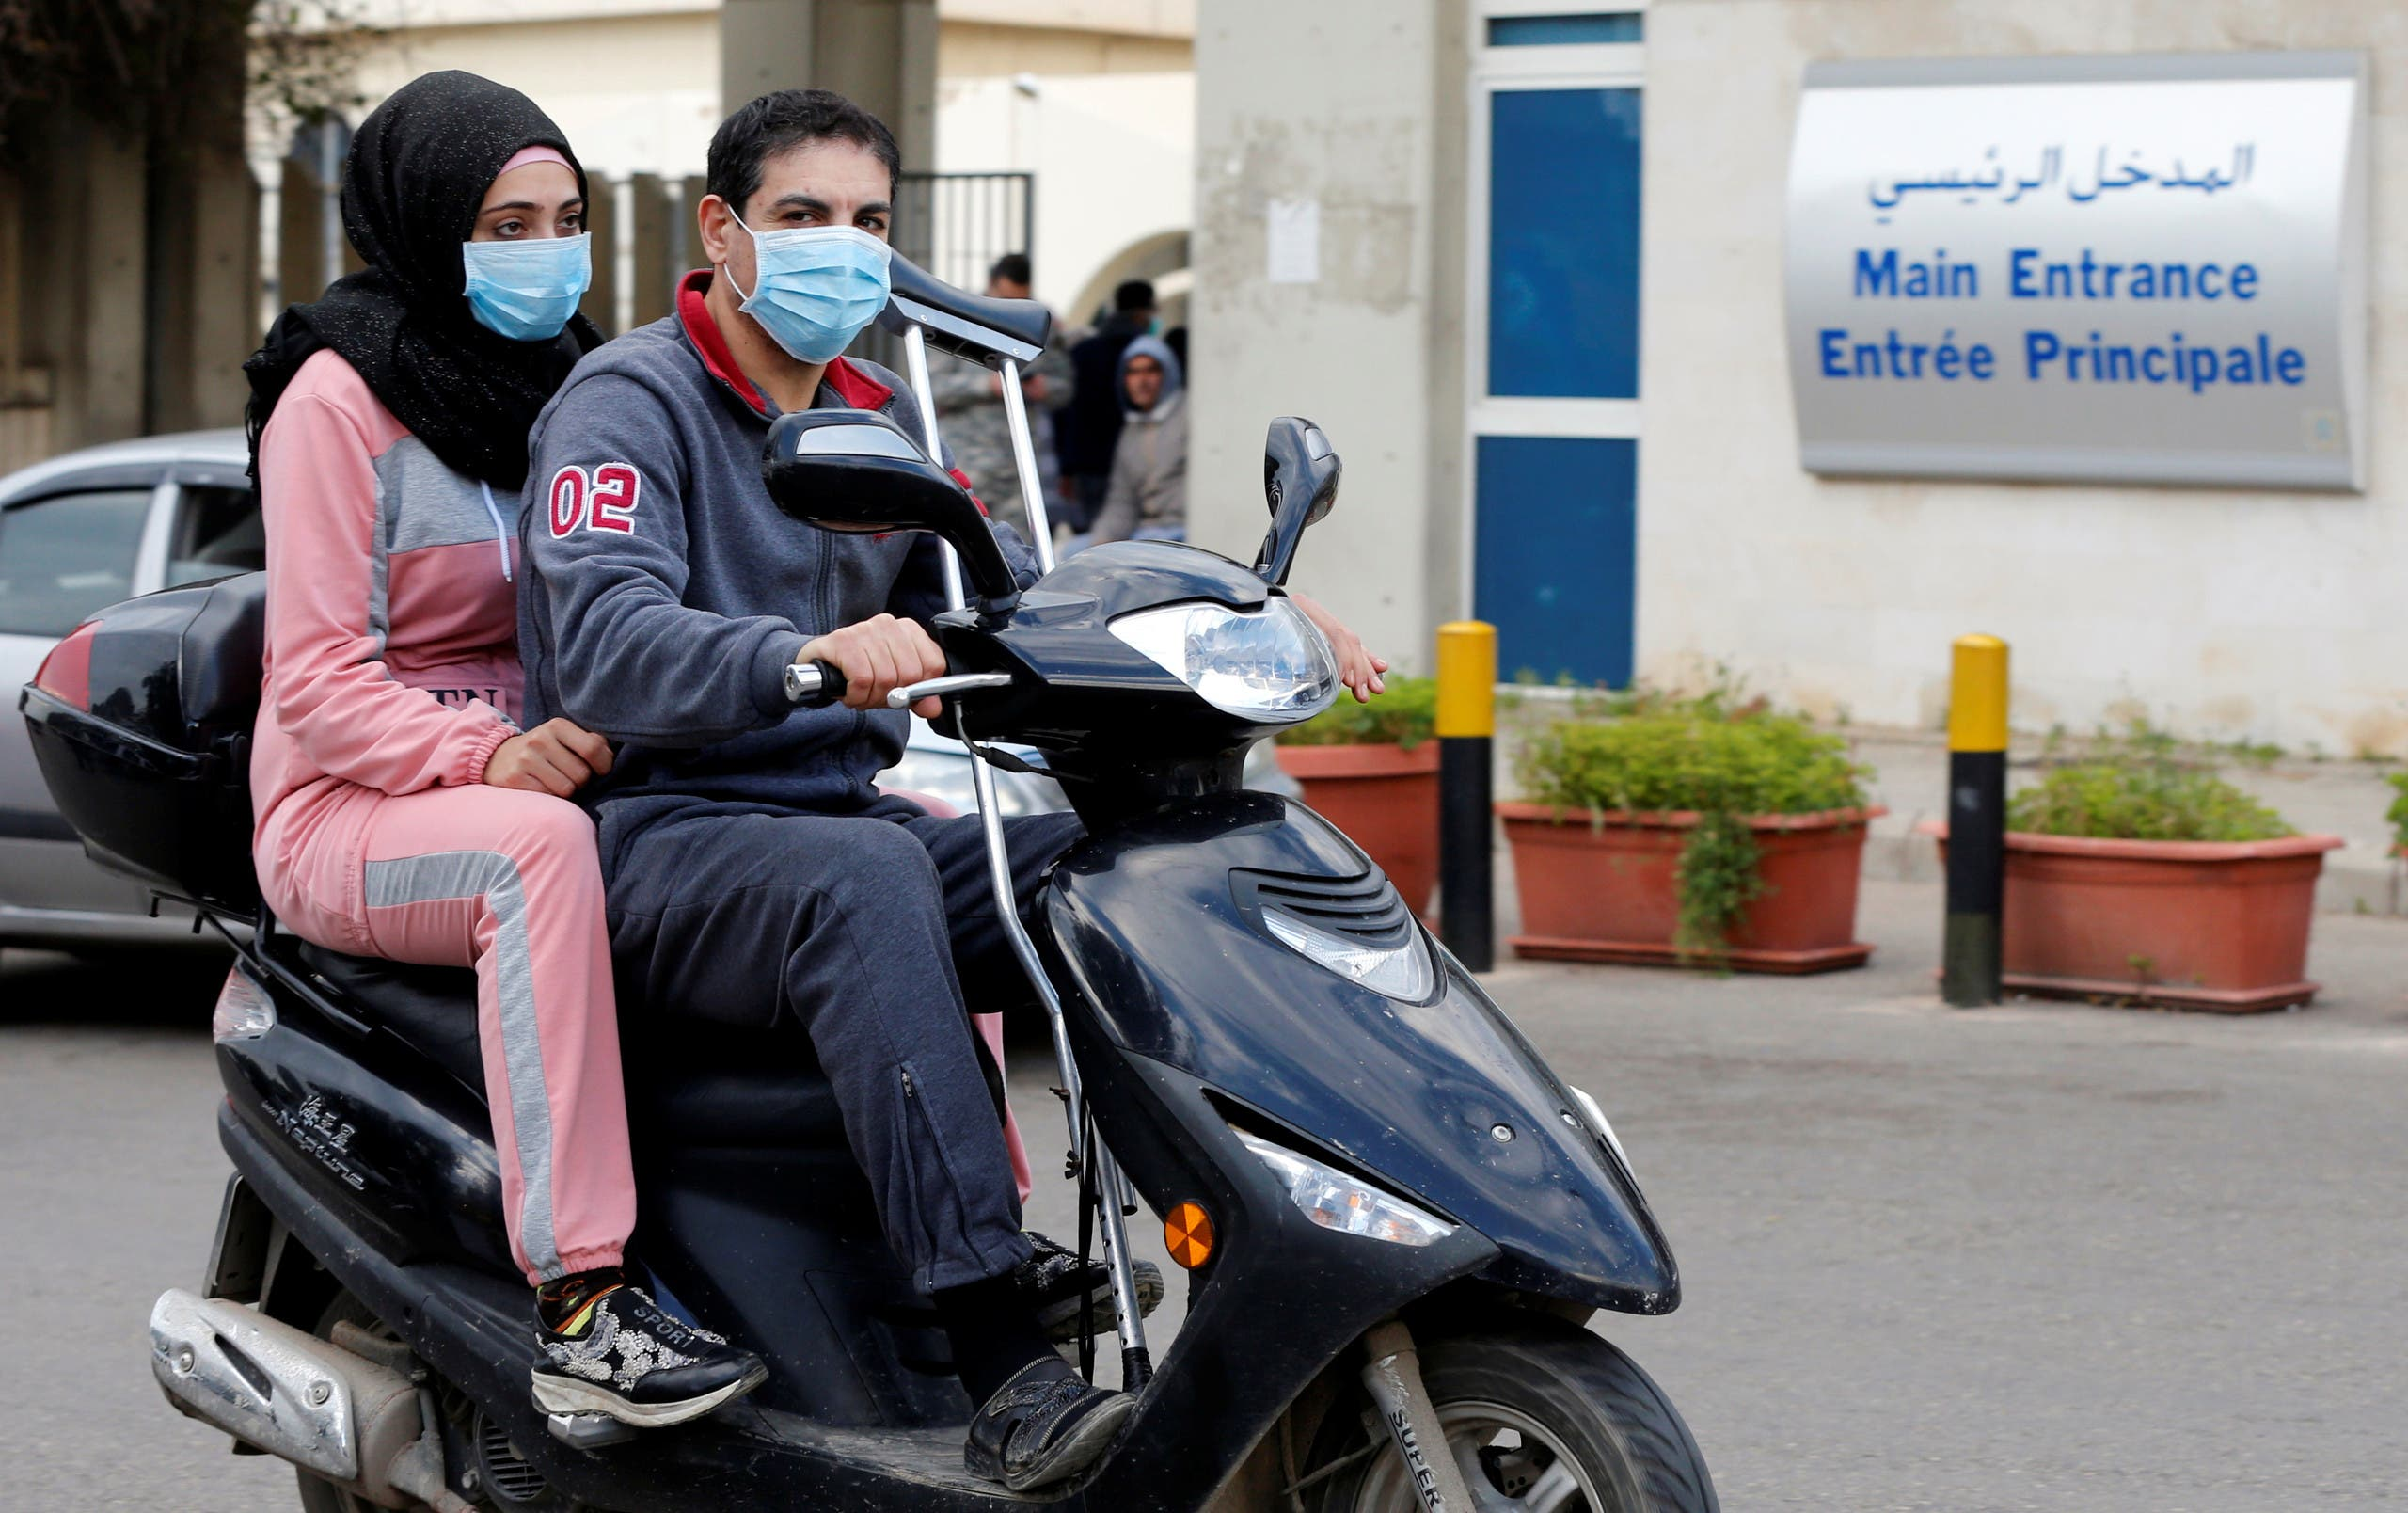 People wearing face masks ride on a motorbike outside Rafik Hariri hospital, where Lebanon's first coronavirus case is being quarantined, in Beirut, Lebanon. (Reuters)